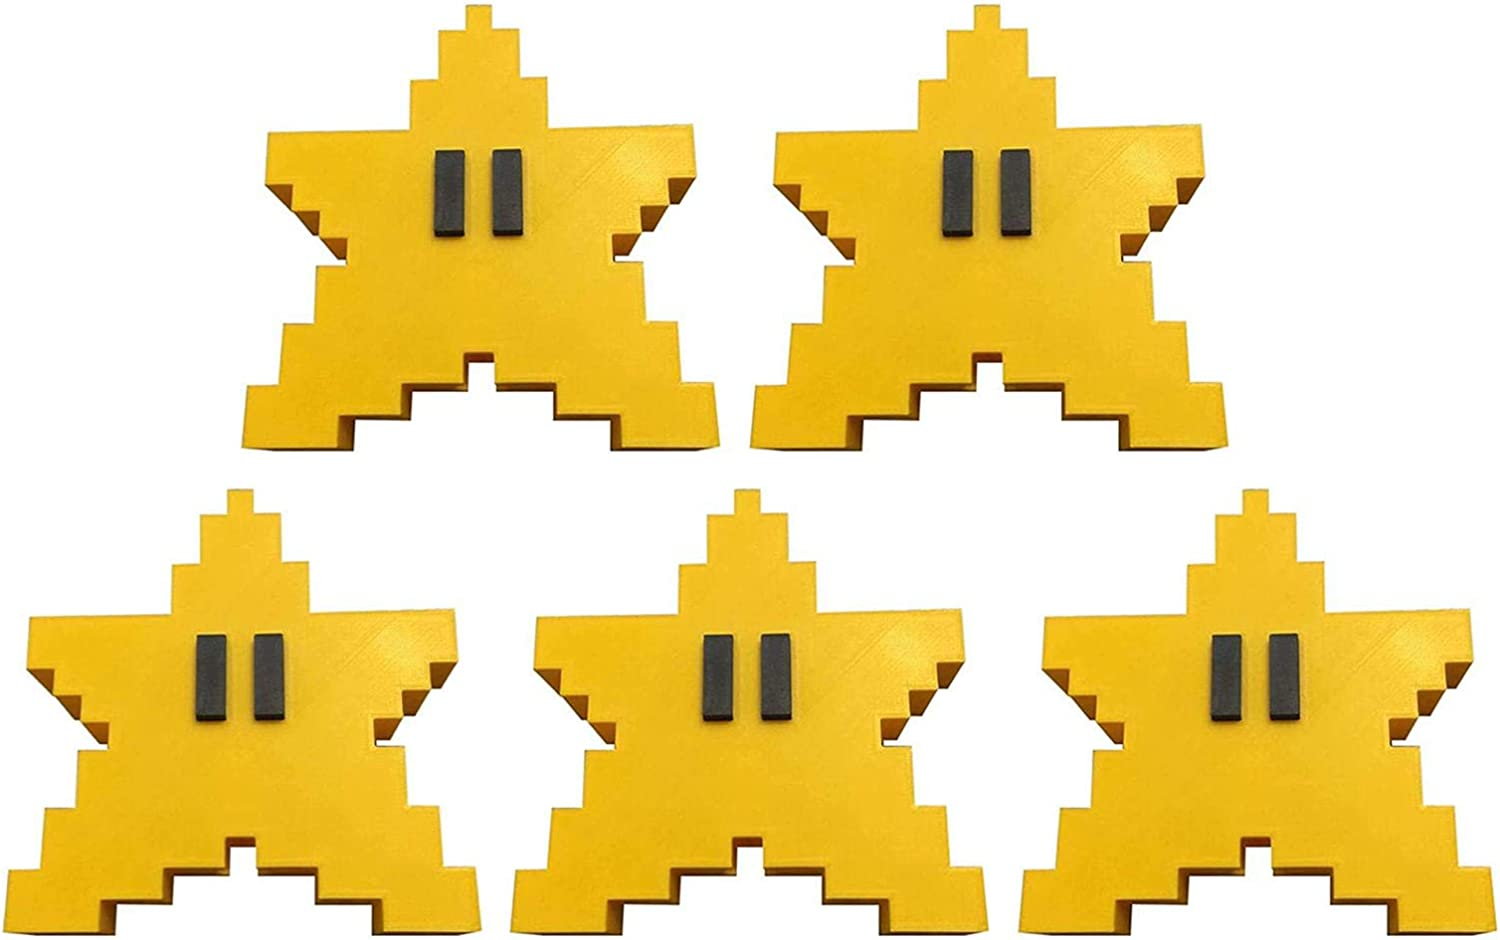 VAHIGCY 爆買い送料無料 Christmas Tree Toppers Topper Star Pixel 上質